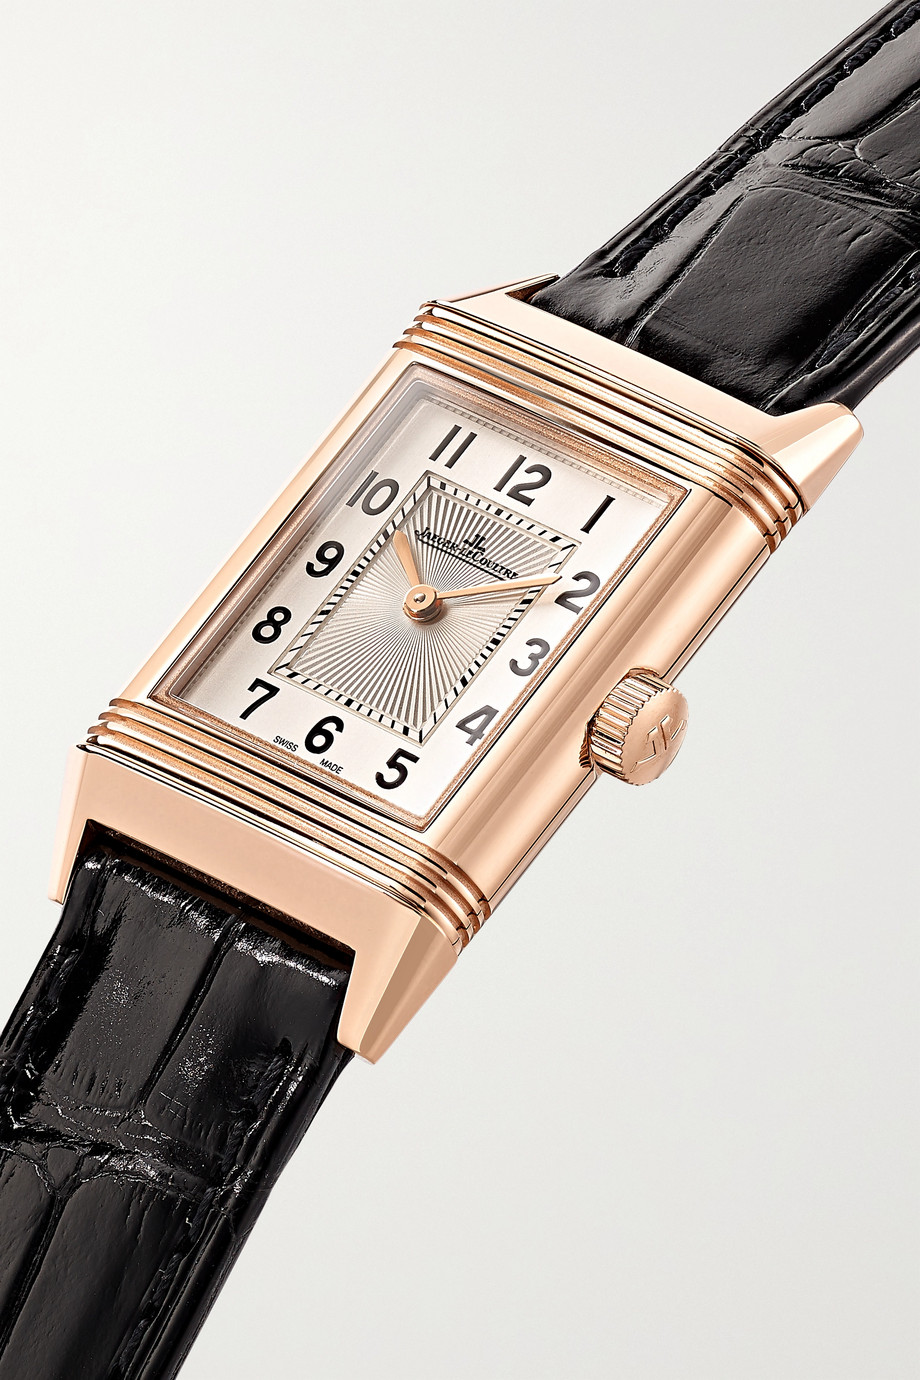 Jaeger-LeCoultre Reverso Classic 21 毫米玫瑰金小号腕表(短吻鳄鱼皮表带)